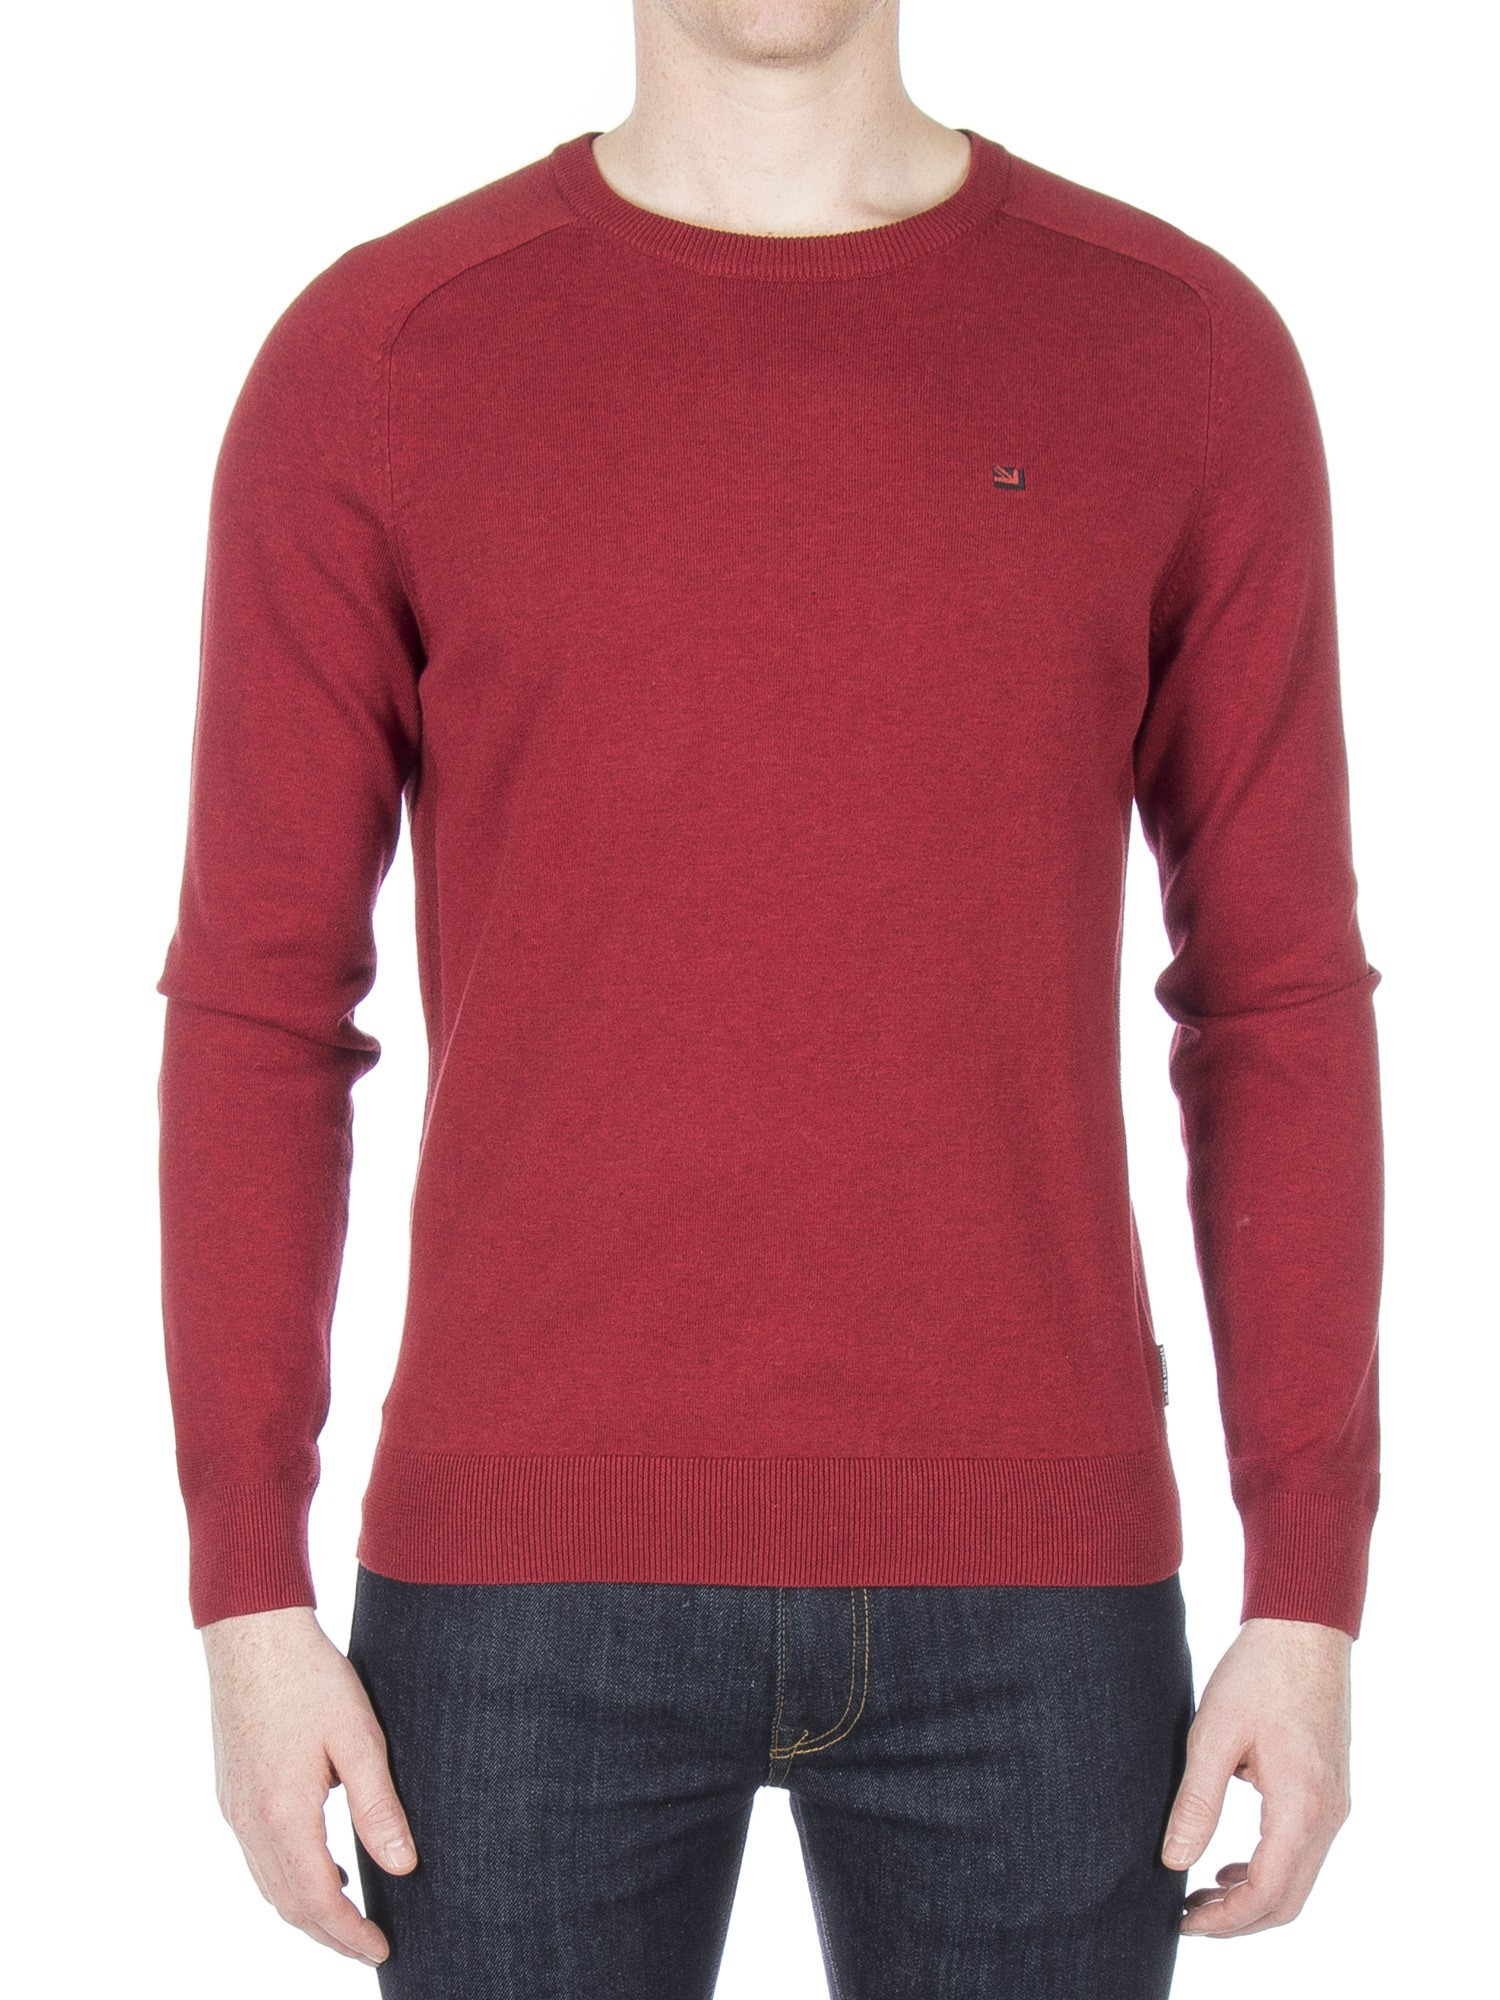 Ben Sherman Chilli Marl Cotton Crew Neck Jumper